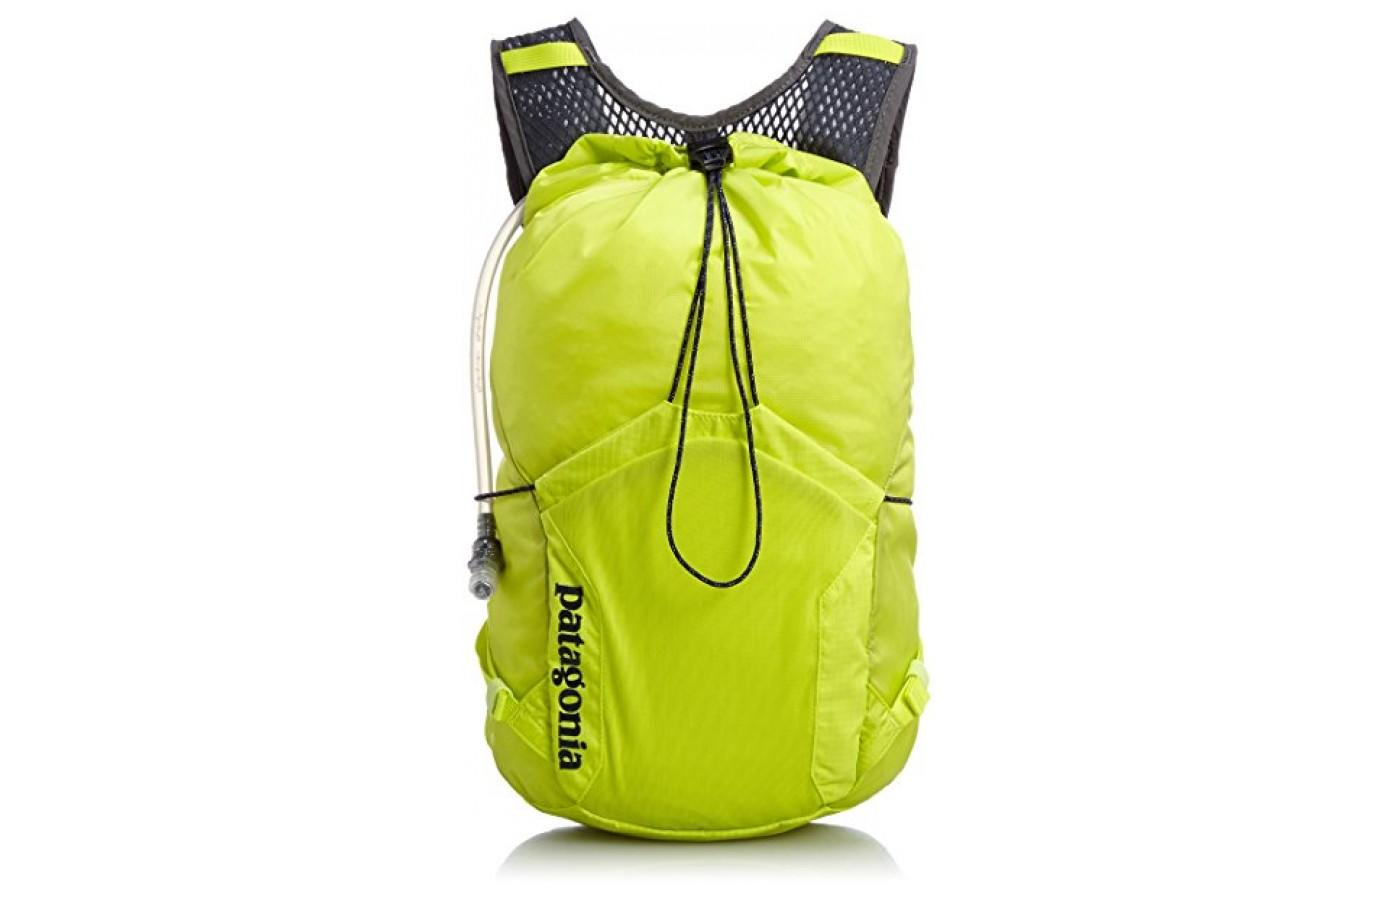 The Patagonia Fore Runner Vest 10L features a drawstring closure